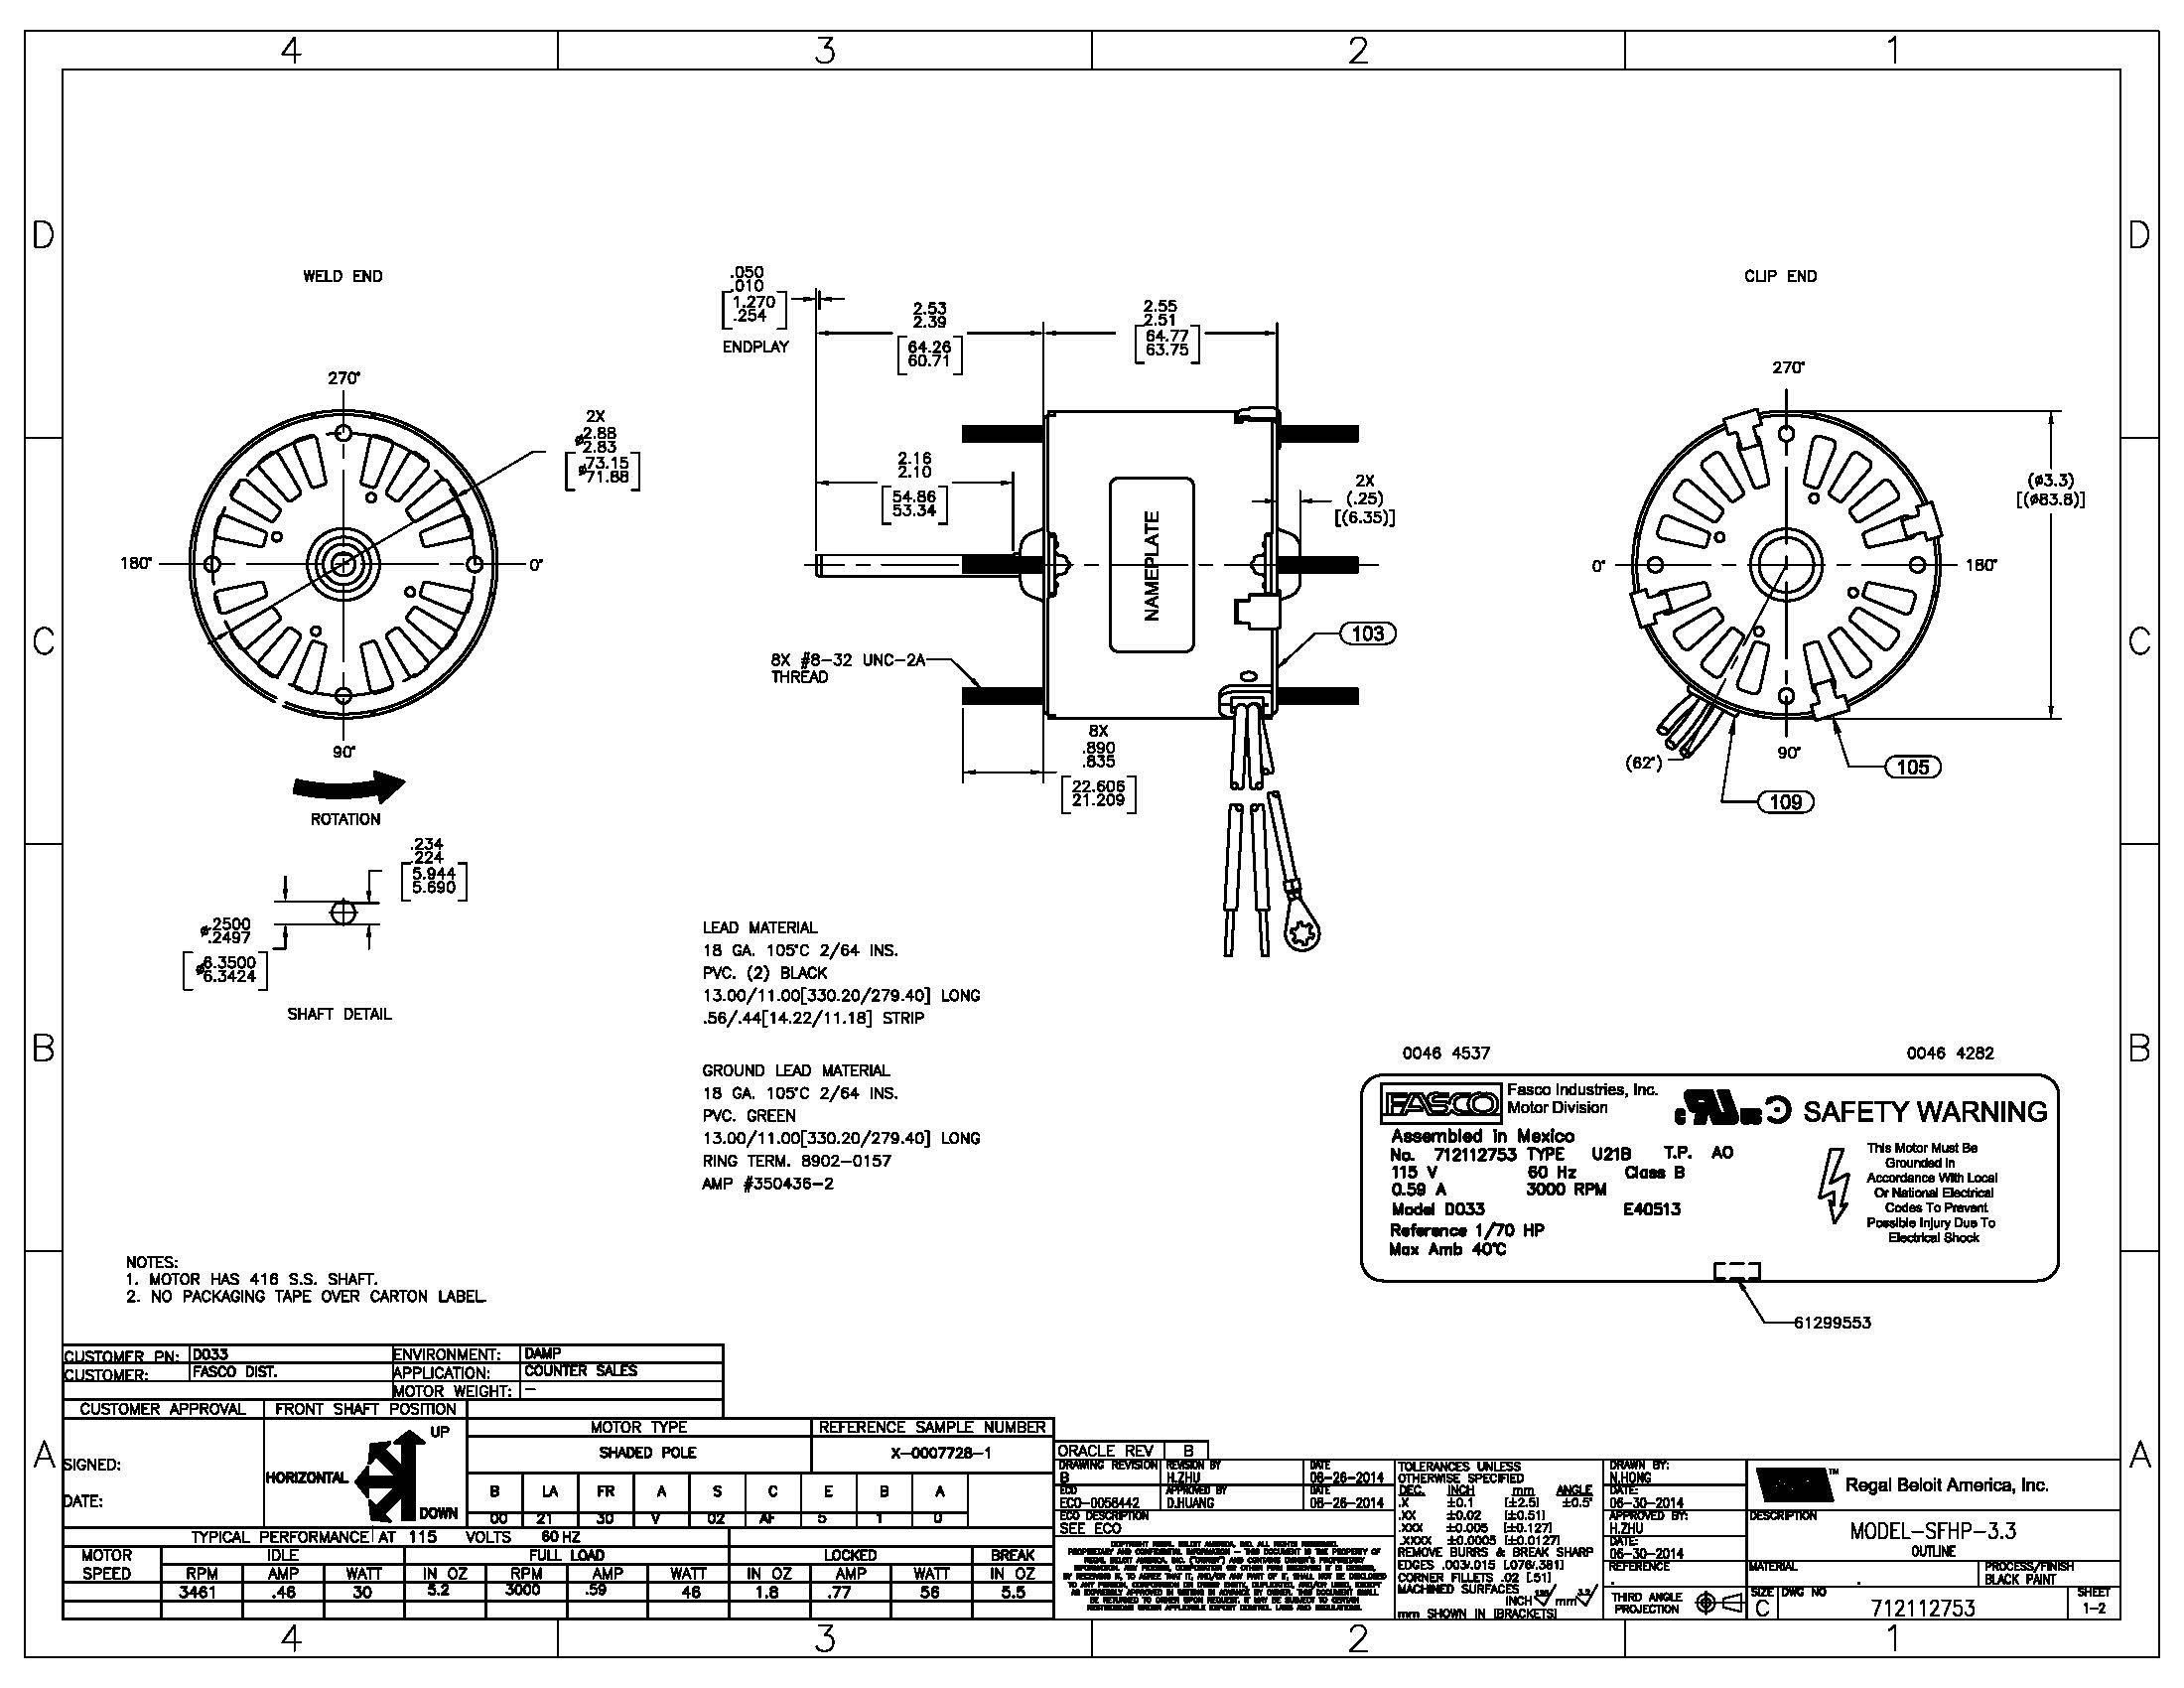 Fasco Motor Wiring Diagram Wiring Diagram Sample Signal Light Wiring Diagram  Emerson Electric Motors Wiring Diagrams